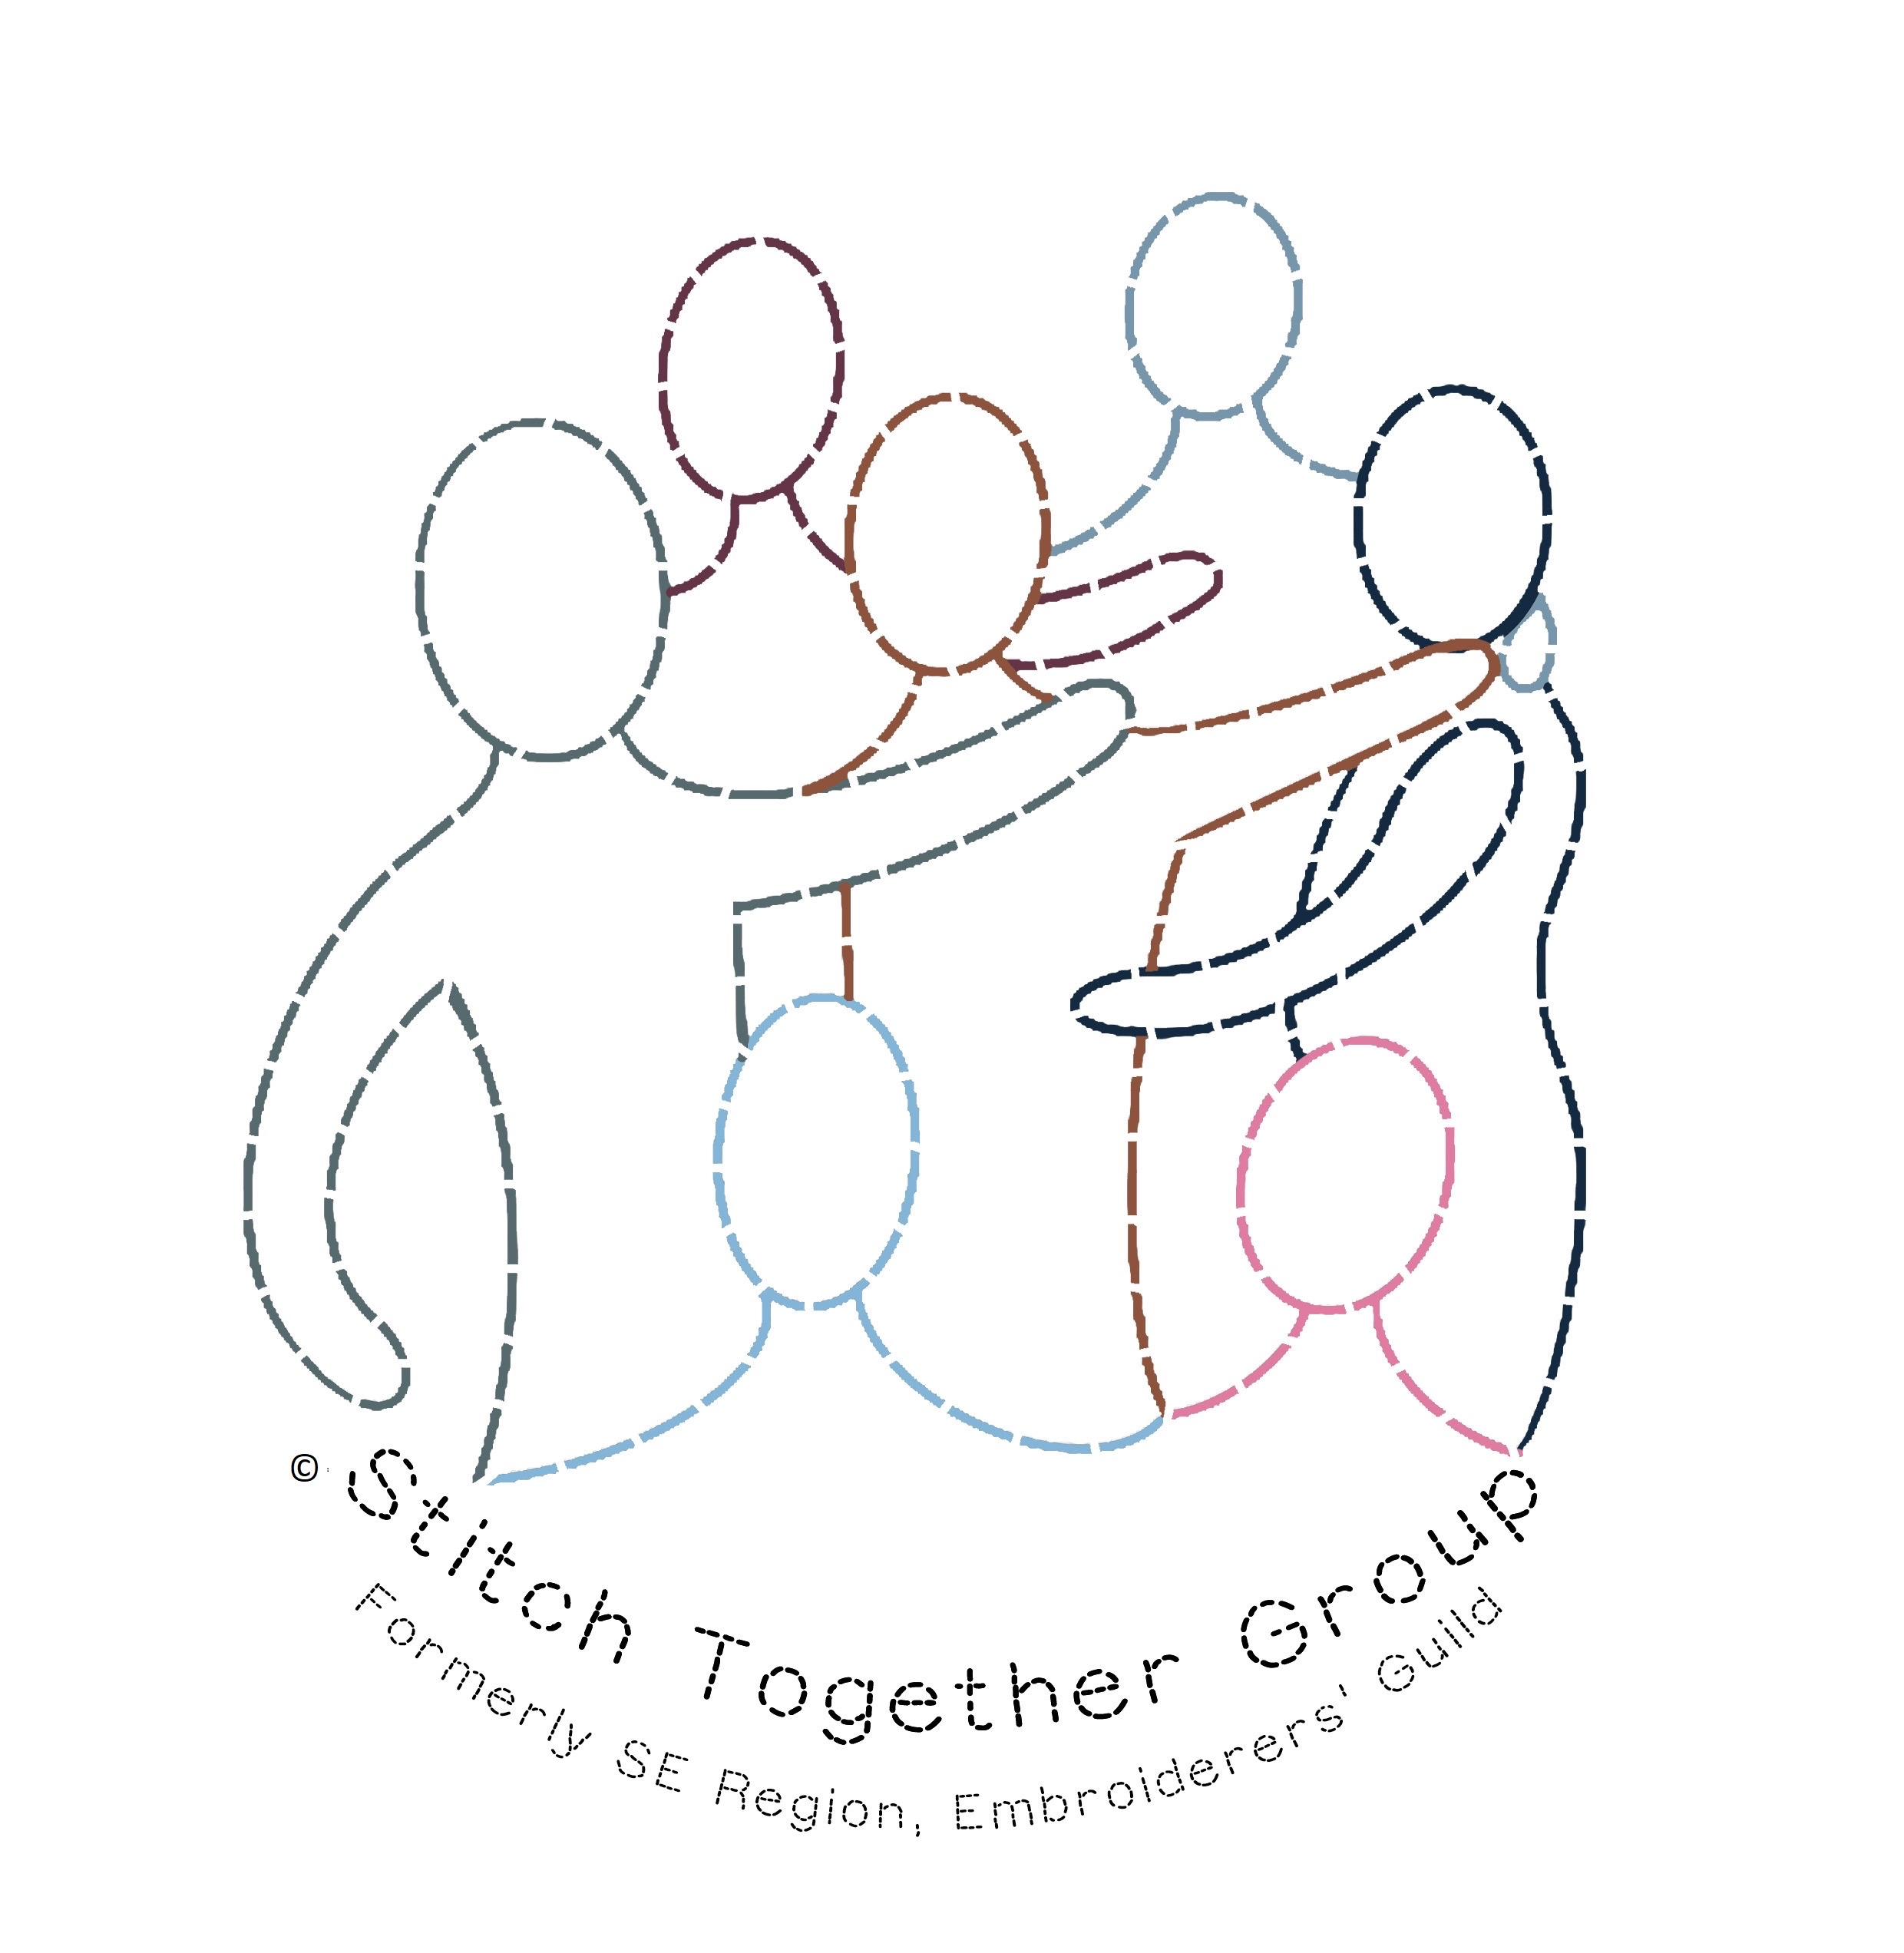 Stitch Together Group